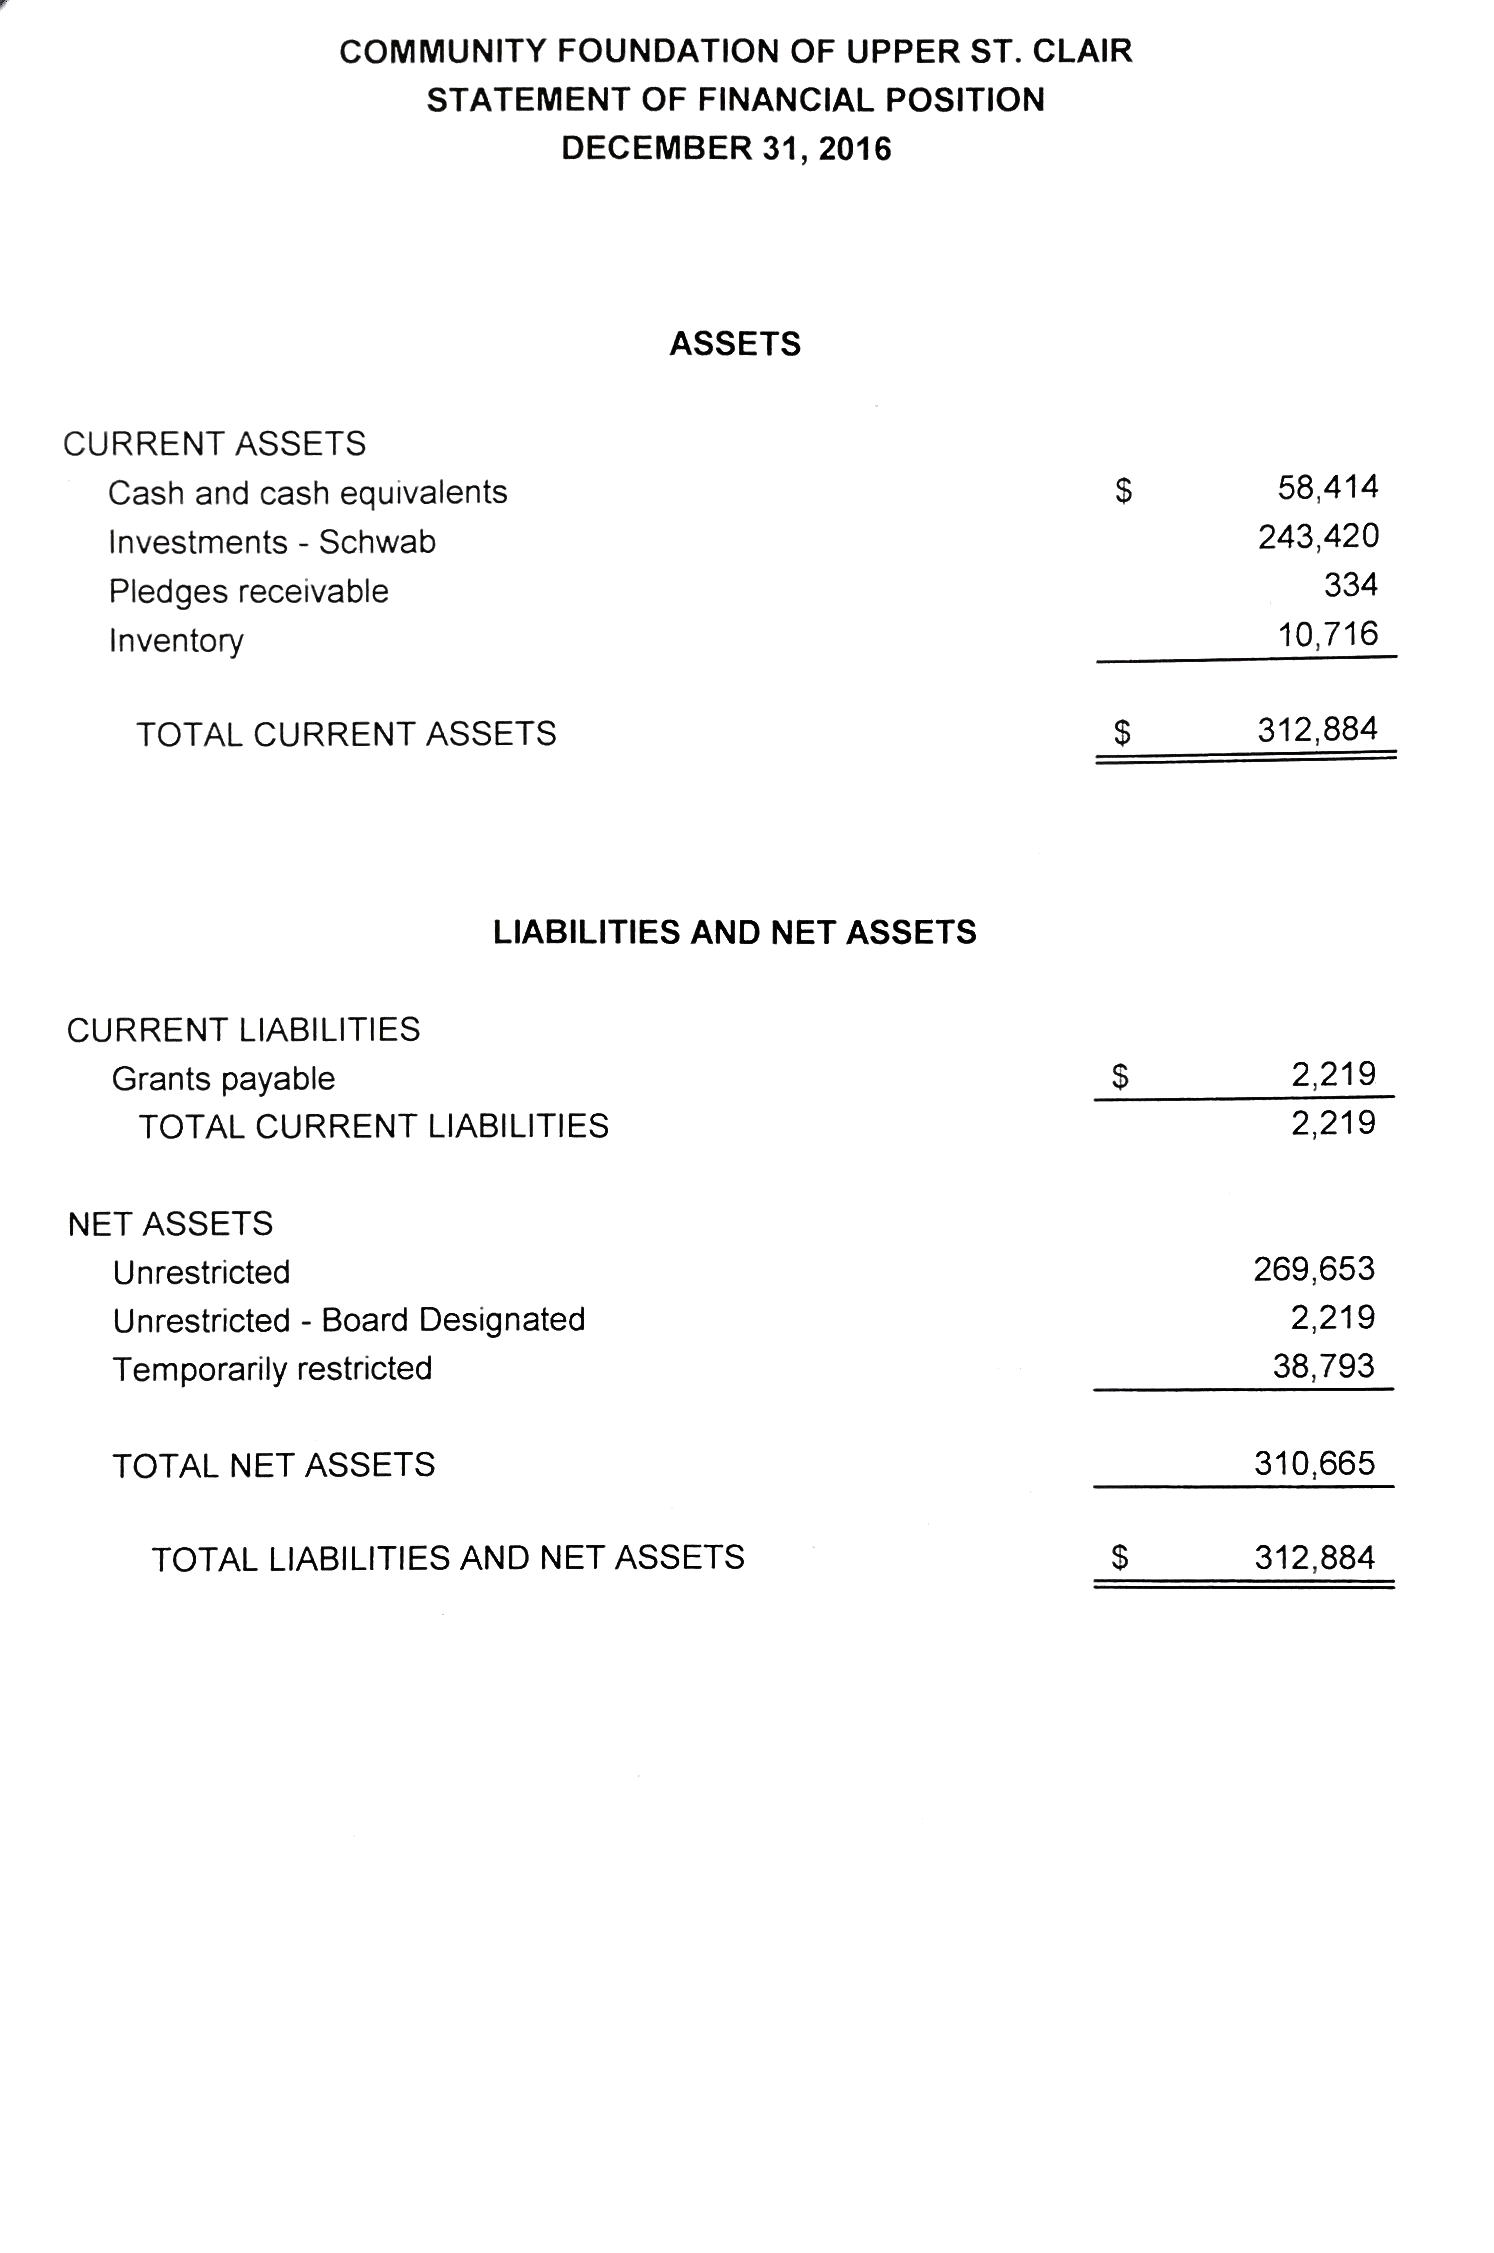 Financial Statement 2016.PNG